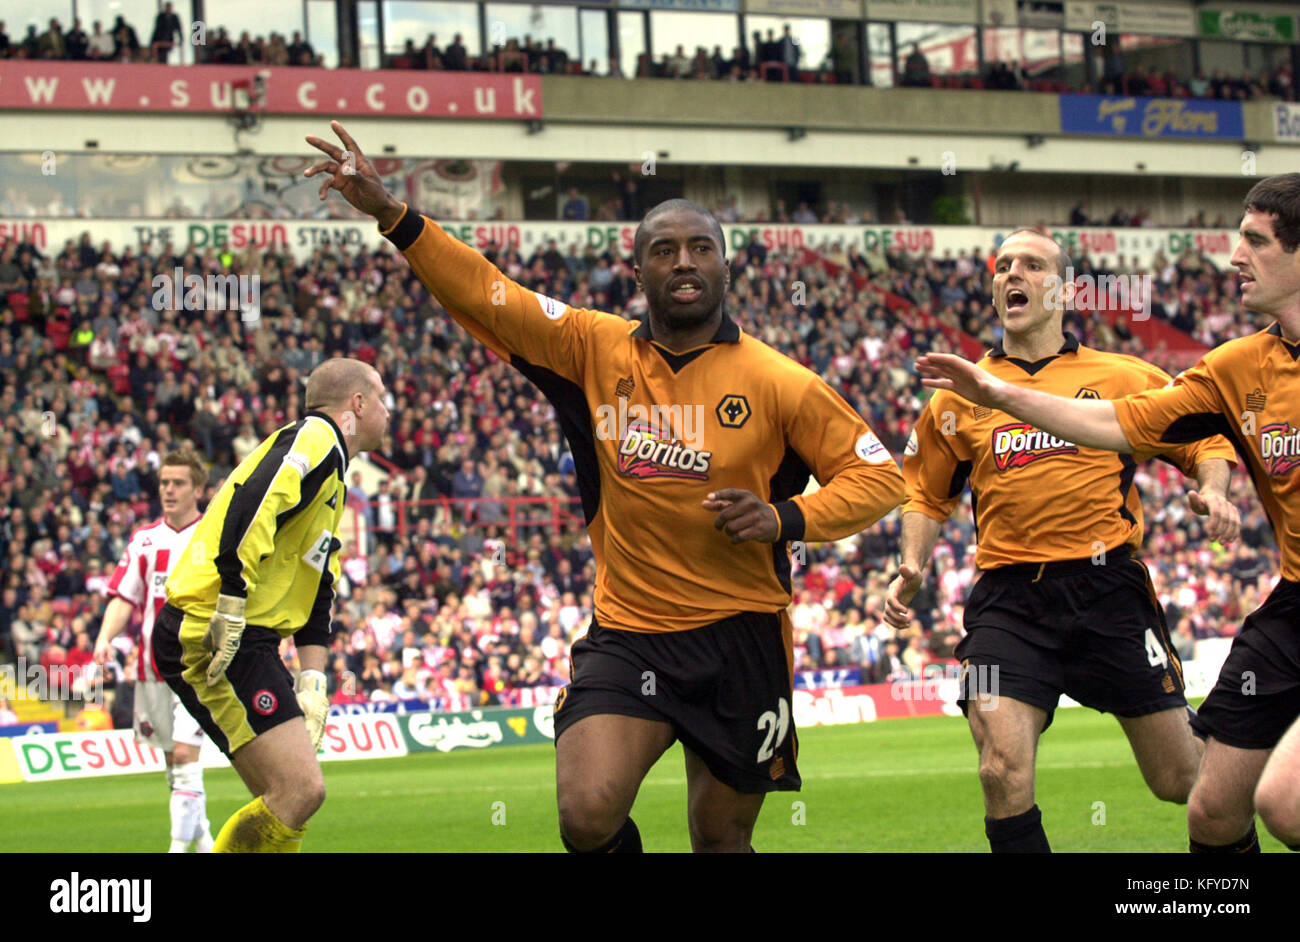 Footballer Dean Sturridge celebrates goal SHEFFIELD UTD V WOLVES AT BRAMHALL LANE. - Stock Image